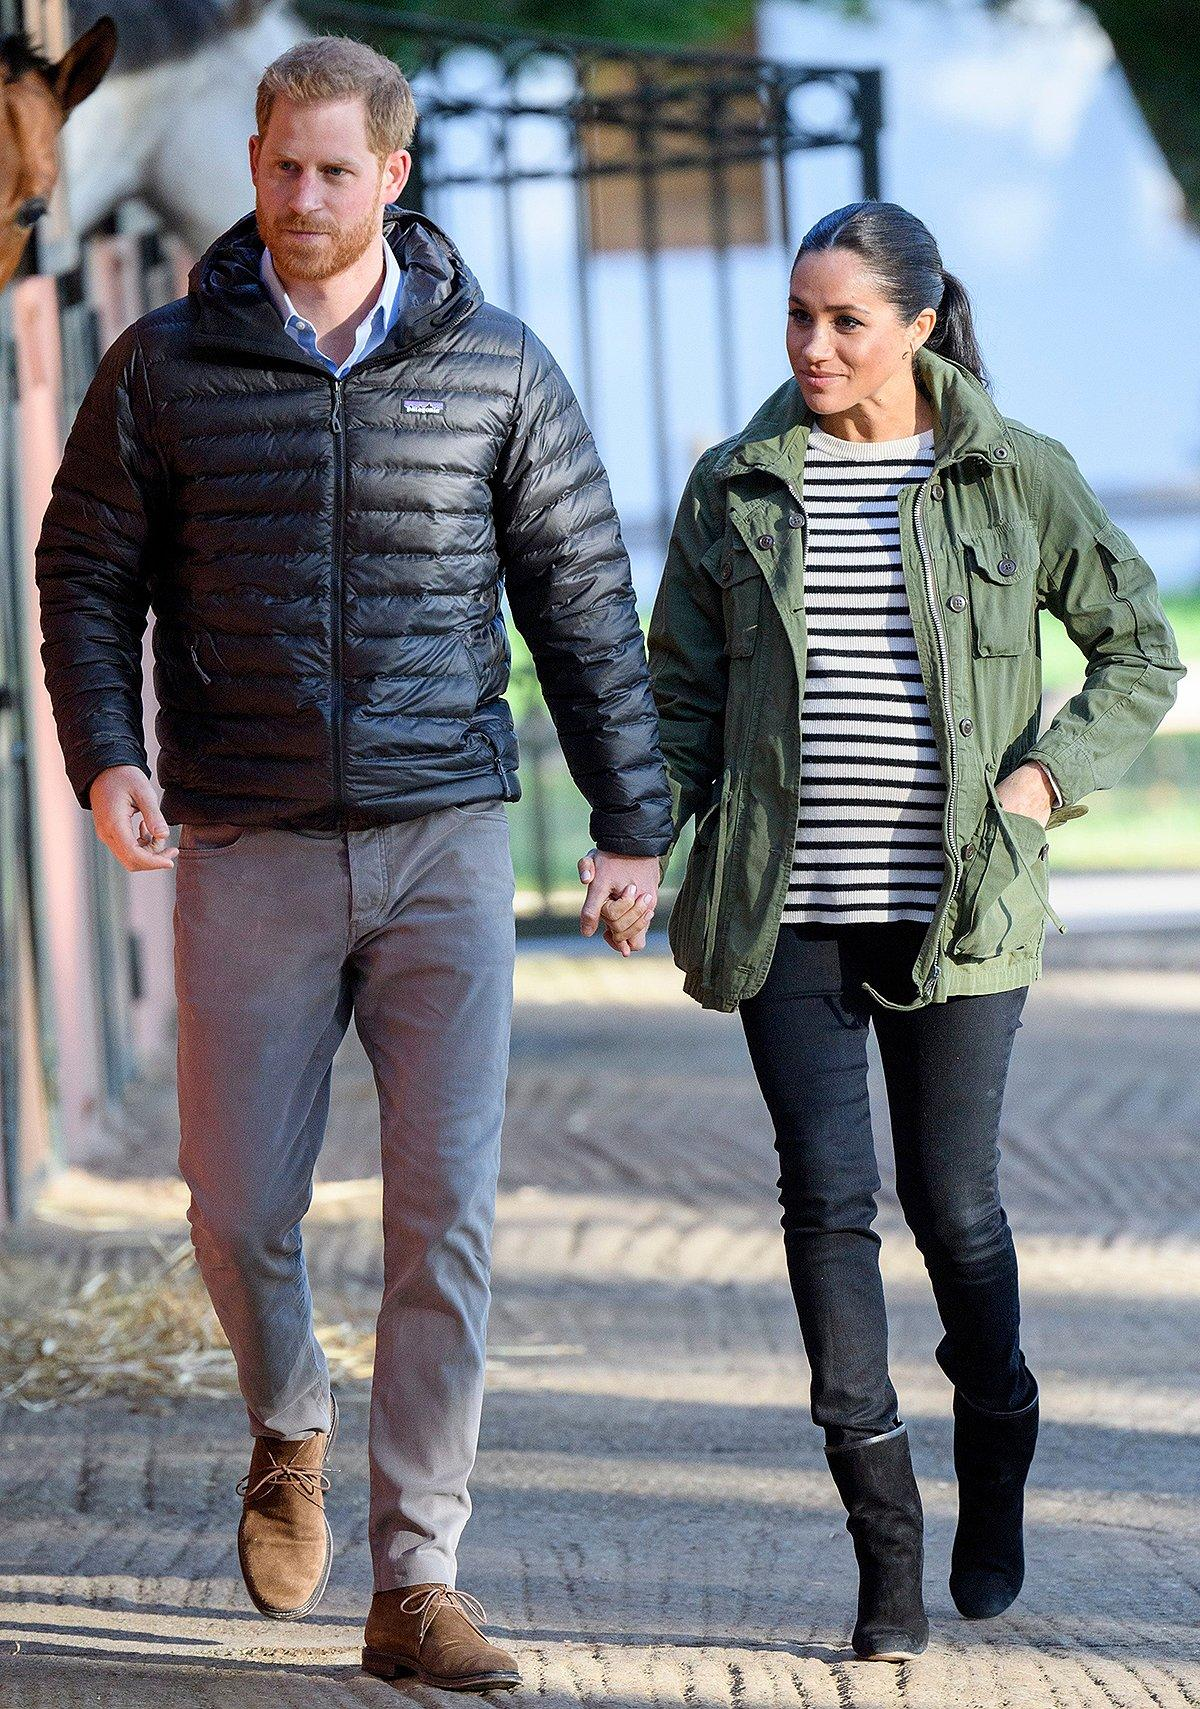 """Meghan and Harry visited the Moroccan Royal Federation of Equestrian Sports to learn about the country's program of supporting children with special needs through animal therapy. Meghan wore a <a href=""""https://people.com/royals/meghan-markle-rewears-jacket-pre-royalty-days/"""" rel=""""nofollow noopener"""" target=""""_blank"""" data-ylk=""""slk:recycled J.Crew anorak jacket"""" class=""""link rapid-noclick-resp"""">recycled J.Crew anorak jacket</a> over a striped sweater with black pants and <a href=""""http://www.anrdoezrs.net/links/8029122/type/dlg/sid/PEO,Shopping:EverythingYouNeedtoCopyMeghanMarkle'sChicSpringStyle,kamiphillips2,Unc,Gal,6939680,201905,I/https://www.stuartweitzman.com/womens-shoes/boots/"""" rel=""""nofollow noopener"""" target=""""_blank"""" data-ylk=""""slk:Stuart Weitzman"""" class=""""link rapid-noclick-resp"""">Stuart Weitzman</a> booties for a look that was equally cute and casual. <strong>Get the Look!</strong> Everlane The Modern Utility Jacket, $78; <a href=""""http://www.pntra.com/t/8-9711-131940-104709?sid=PEO%2CShopping%3AEverythingYouNeedtoCopyMeghanMarkle%27sChicSpringStyle%2Ckamiphillips2%2CUnc%2CGal%2C6939680%2C201905%2CI&url=https%3A%2F%2Fwww.everlane.com%2Fproducts%2Fwomens-modern-utlty-jkt-surplus"""" rel=""""nofollow noopener"""" target=""""_blank"""" data-ylk=""""slk:everlane.com"""" class=""""link rapid-noclick-resp"""">everlane.com</a> Sanctuary Commodore Hooded Anorak, $169; <a href=""""https://click.linksynergy.com/deeplink?id=93xLBvPhAeE&mid=13867&murl=https%3A%2F%2Fwww.bloomingdales.com%2Fshop%2Fproduct%2Fsanctuary-commodore-hooded-anorak%3FID%3D3207506&u1=PEO%2CShopping%3AEverythingYouNeedtoCopyMeghanMarkle%27sChicSpringStyle%2Ckamiphillips2%2CUnc%2CGal%2C6939680%2C201905%2CI"""" rel=""""nofollow noopener"""" target=""""_blank"""" data-ylk=""""slk:bloomingdales.com"""" class=""""link rapid-noclick-resp"""">bloomingdales.com</a> DL1961 Women's Beekman Military Jacket, $168; <a href=""""https://www.amazon.com/DL1961-Womens-Beekman-Military-X-Small/dp/B077KHG14C?ie=UTF8&camp=1789&creative=9325&linkCode=as2&creativeASIN=B077KHG14C&tag=peop"""